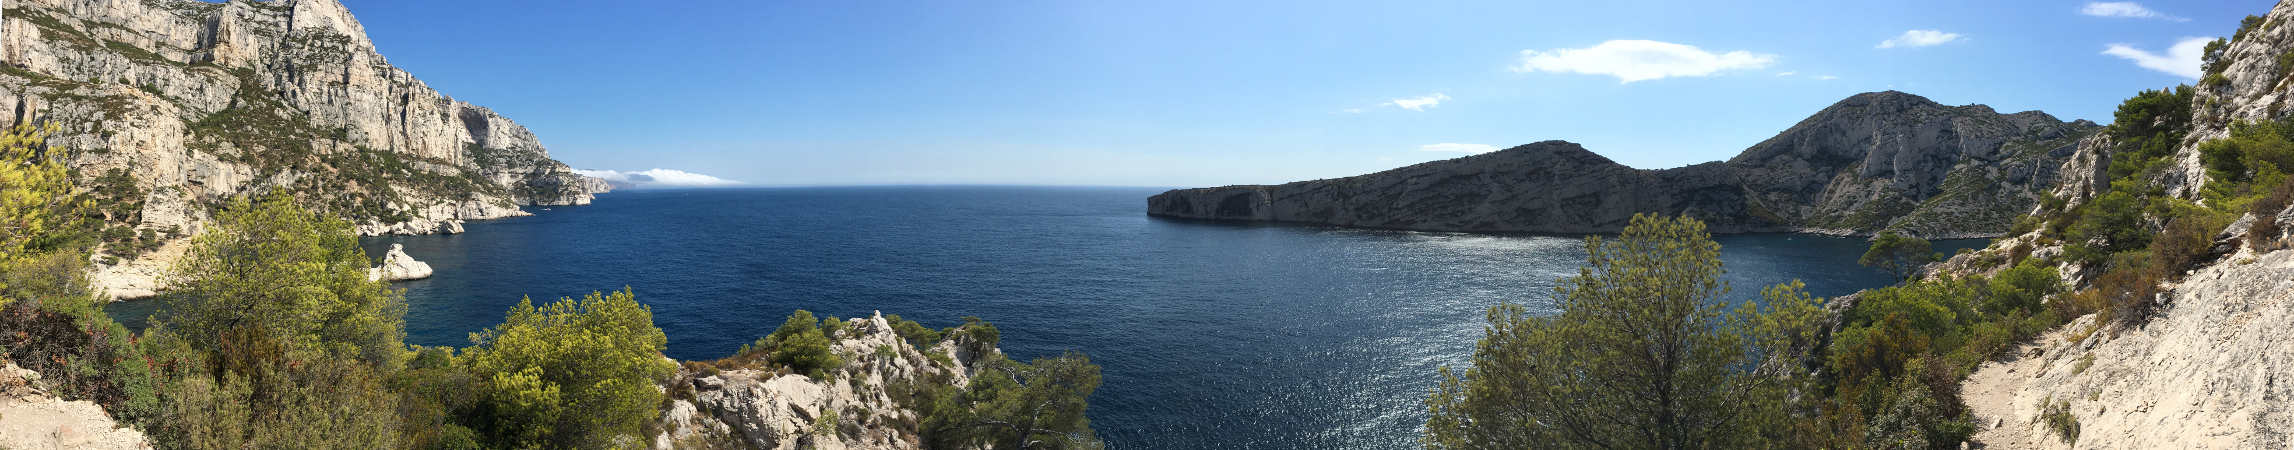 View of the Calanques near Marseilles, France